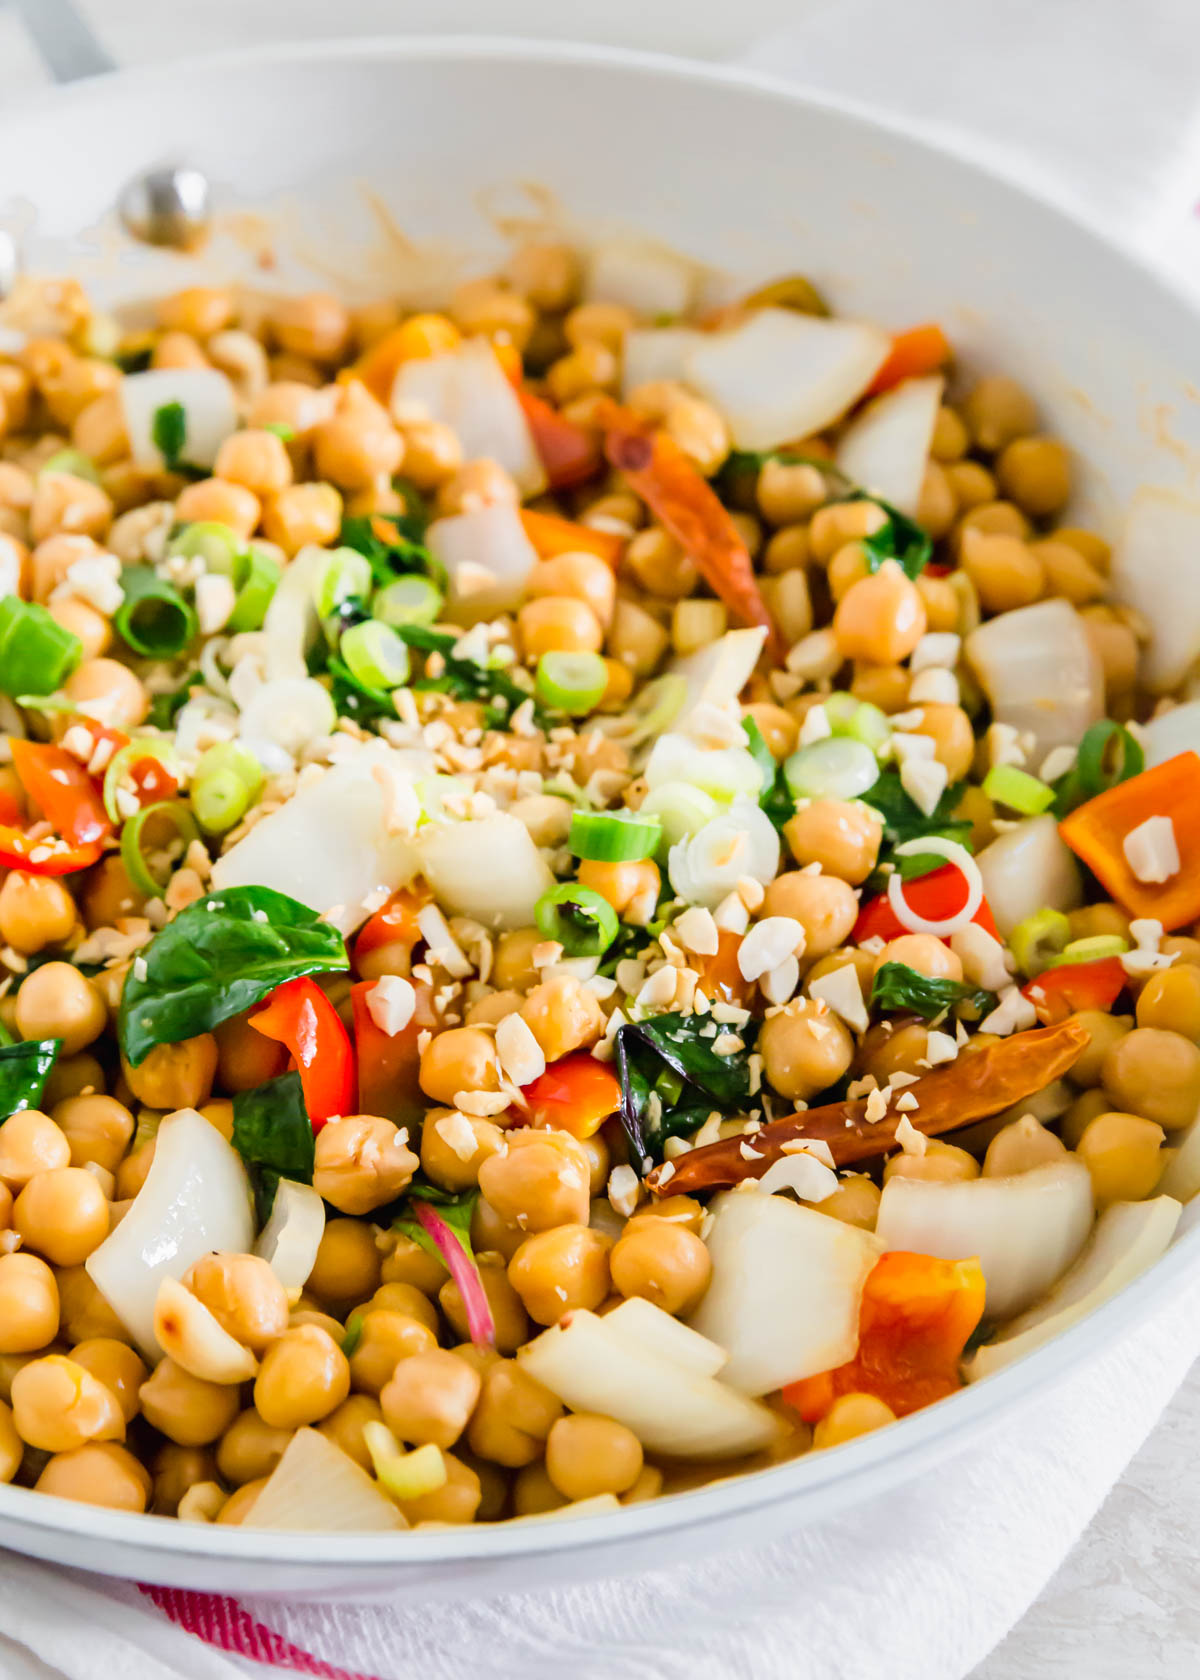 Making Kung Pao chickpeas is a great way to enjoy this Chinese takeout meal with a vegan twist.